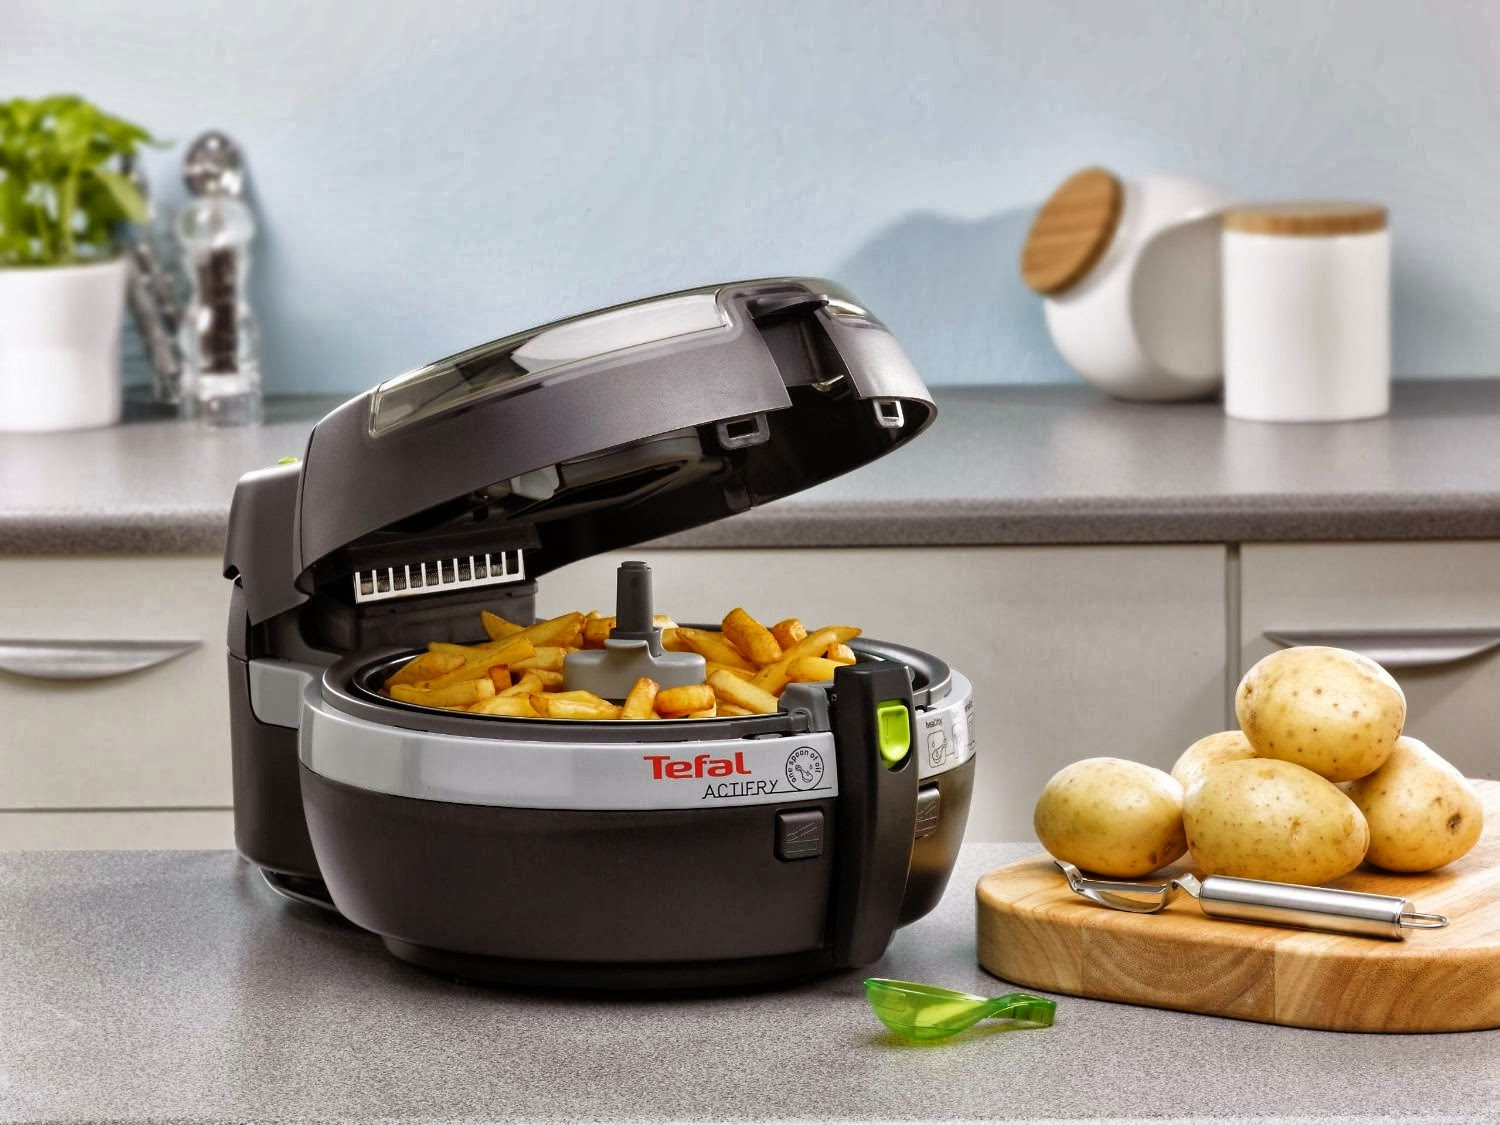 our stories philip airfryer vs tefal actifry. Black Bedroom Furniture Sets. Home Design Ideas